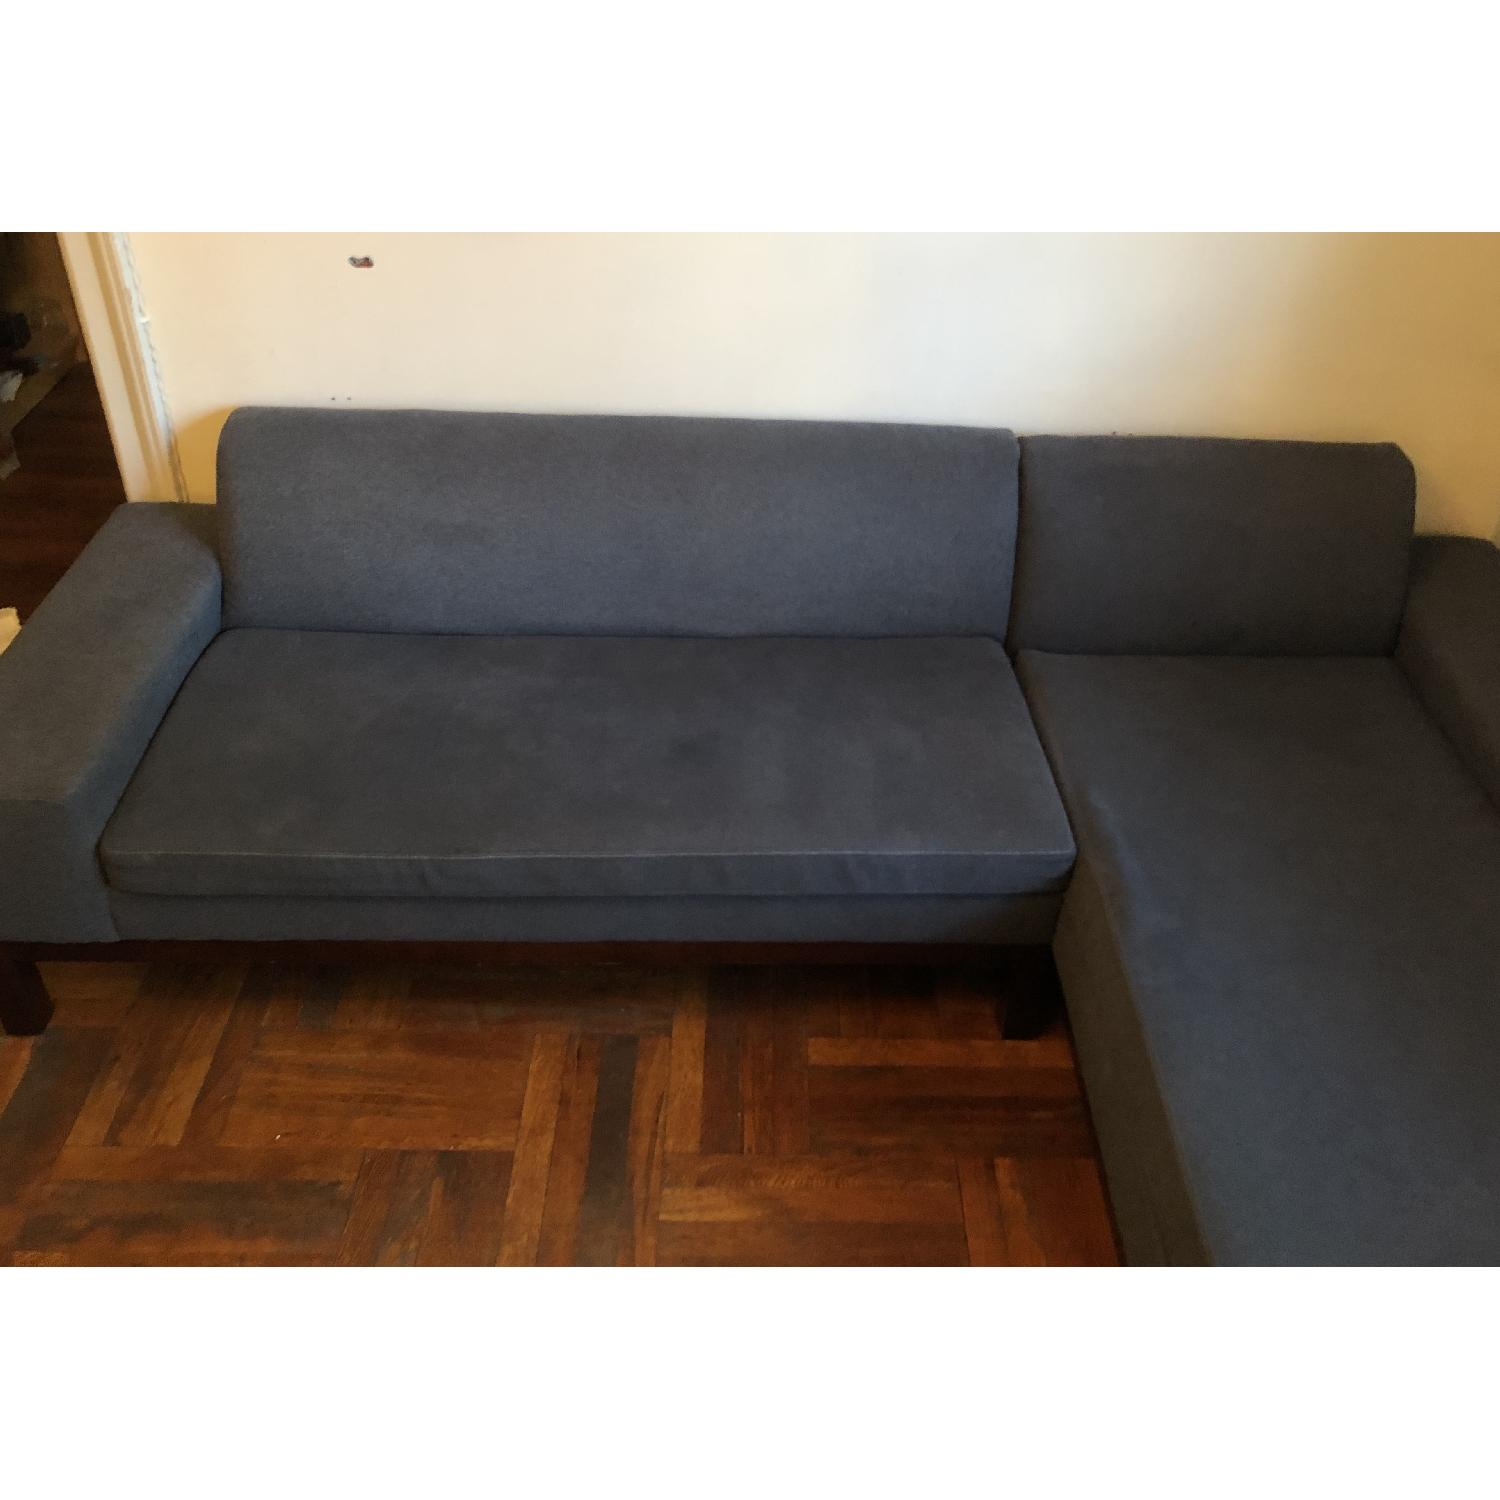 West Elm Sectional Sofa w/ Chaise - image-4